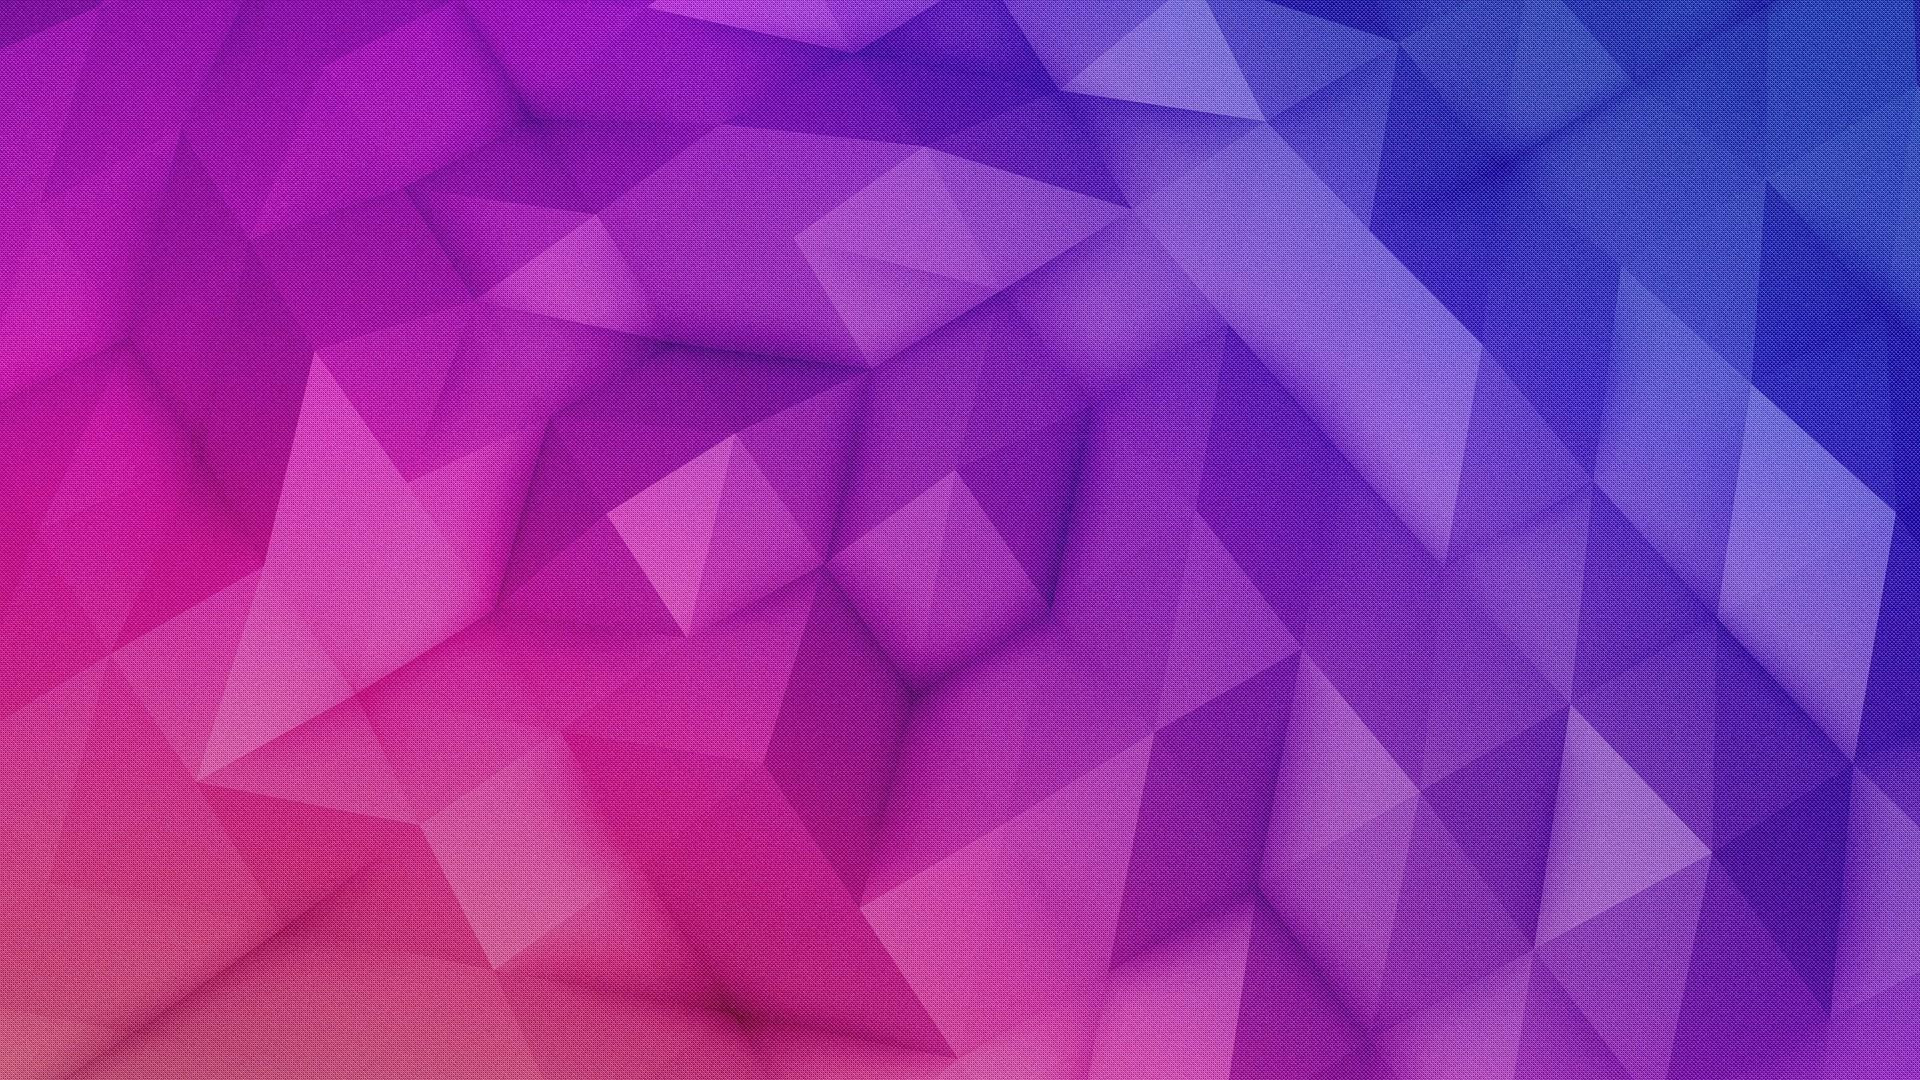 Polygon Wallpapers - Wallpaper Cave